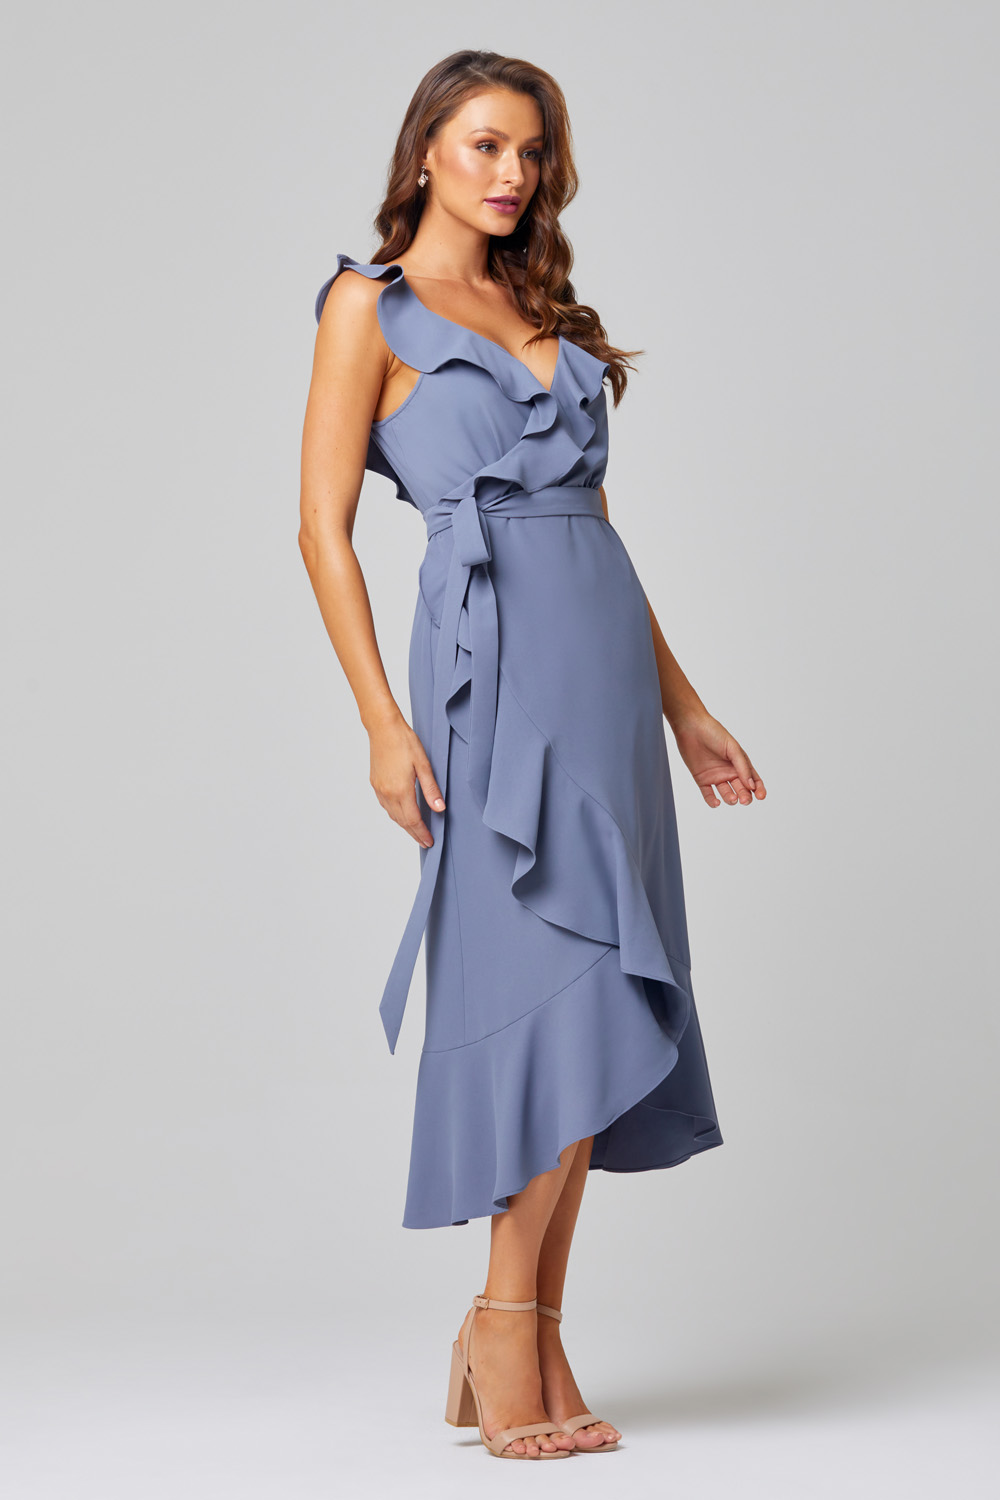 Thea Self-Tie Midi Bridesmaid Dress - TO855 Side